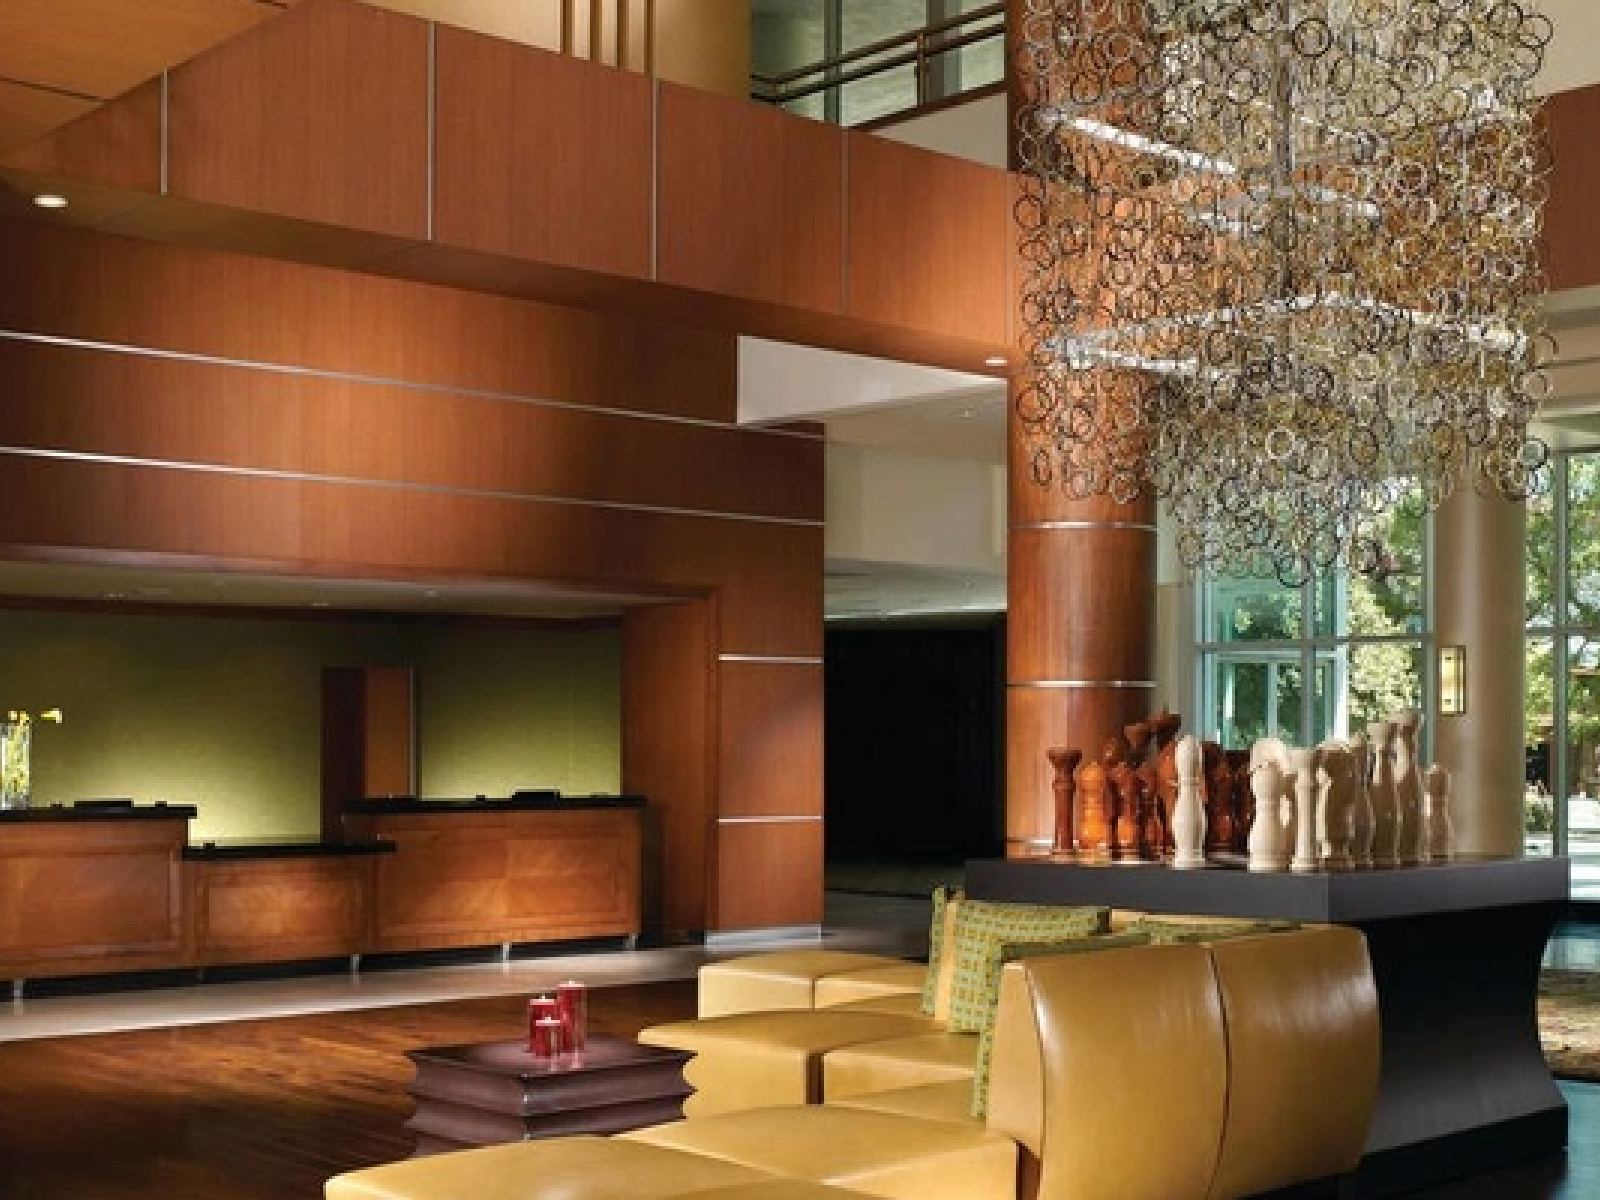 Main image for article titled California Dreaming at Warner Center Marriott Woodland Hills